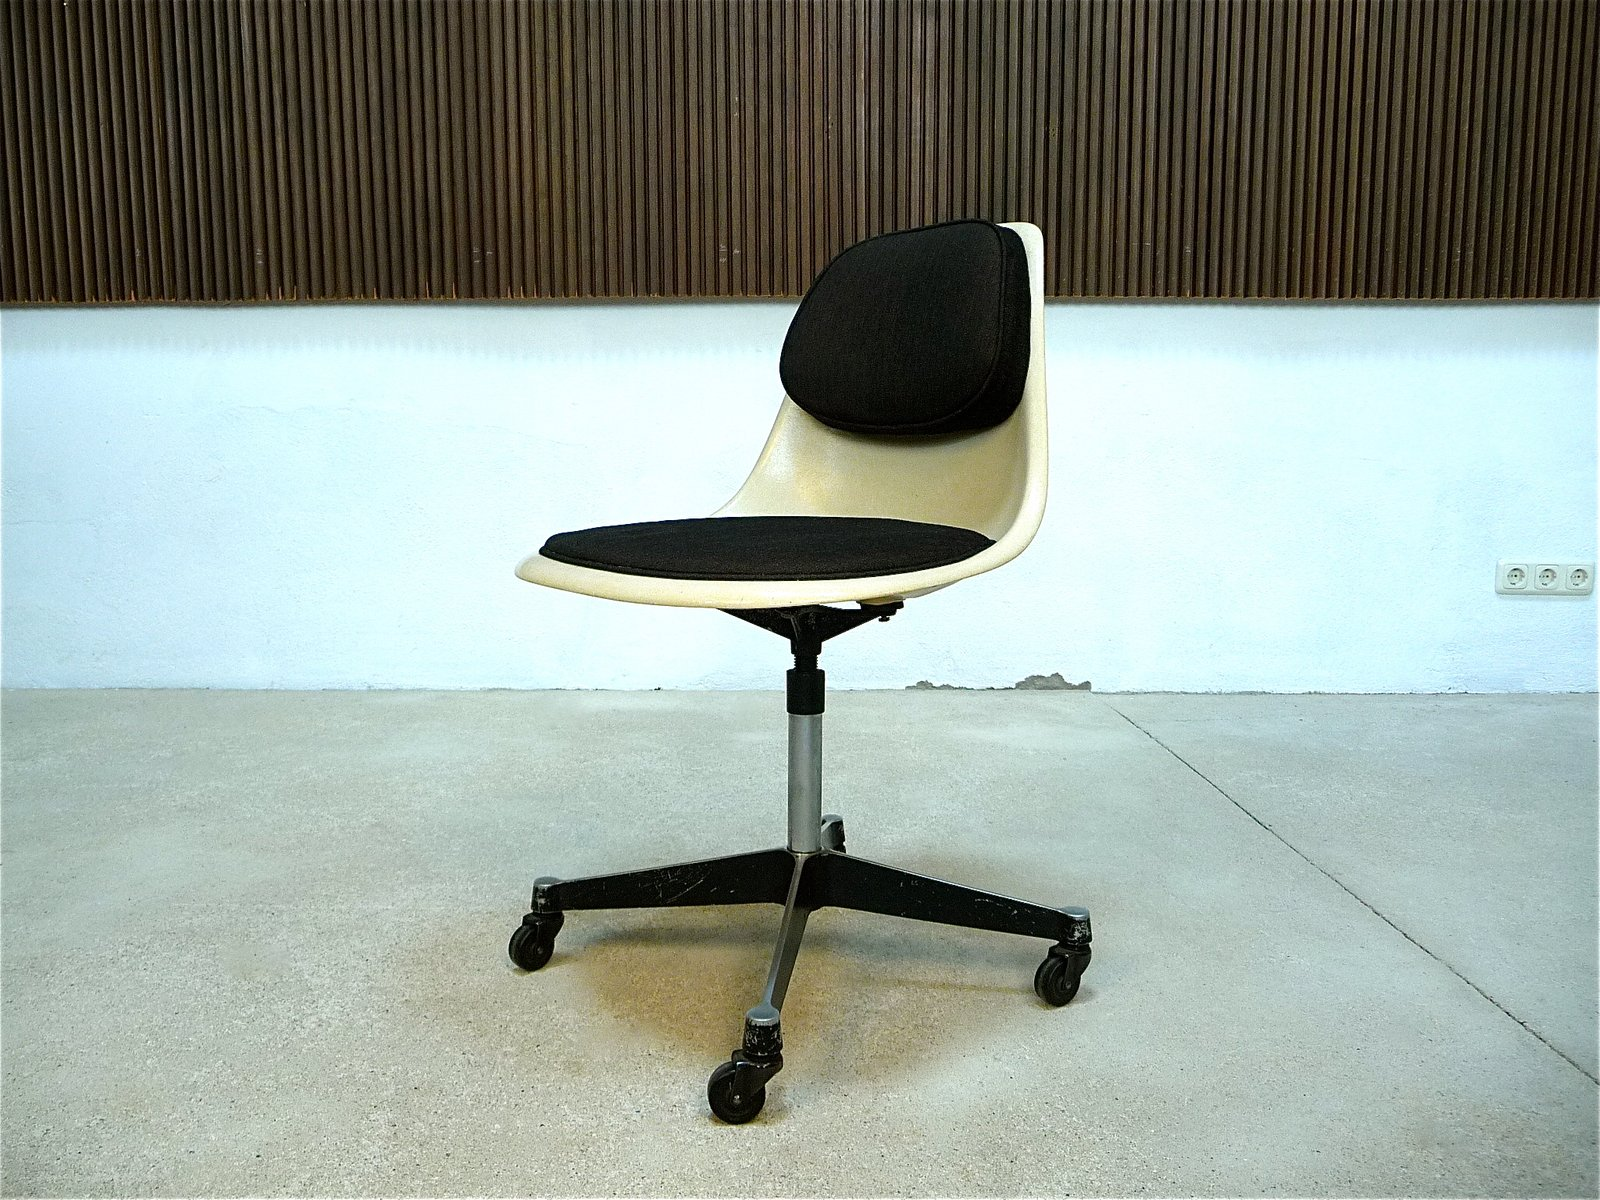 PSCC 4 Office Chair By Charles U0026 Ray Eames For Herman Miller